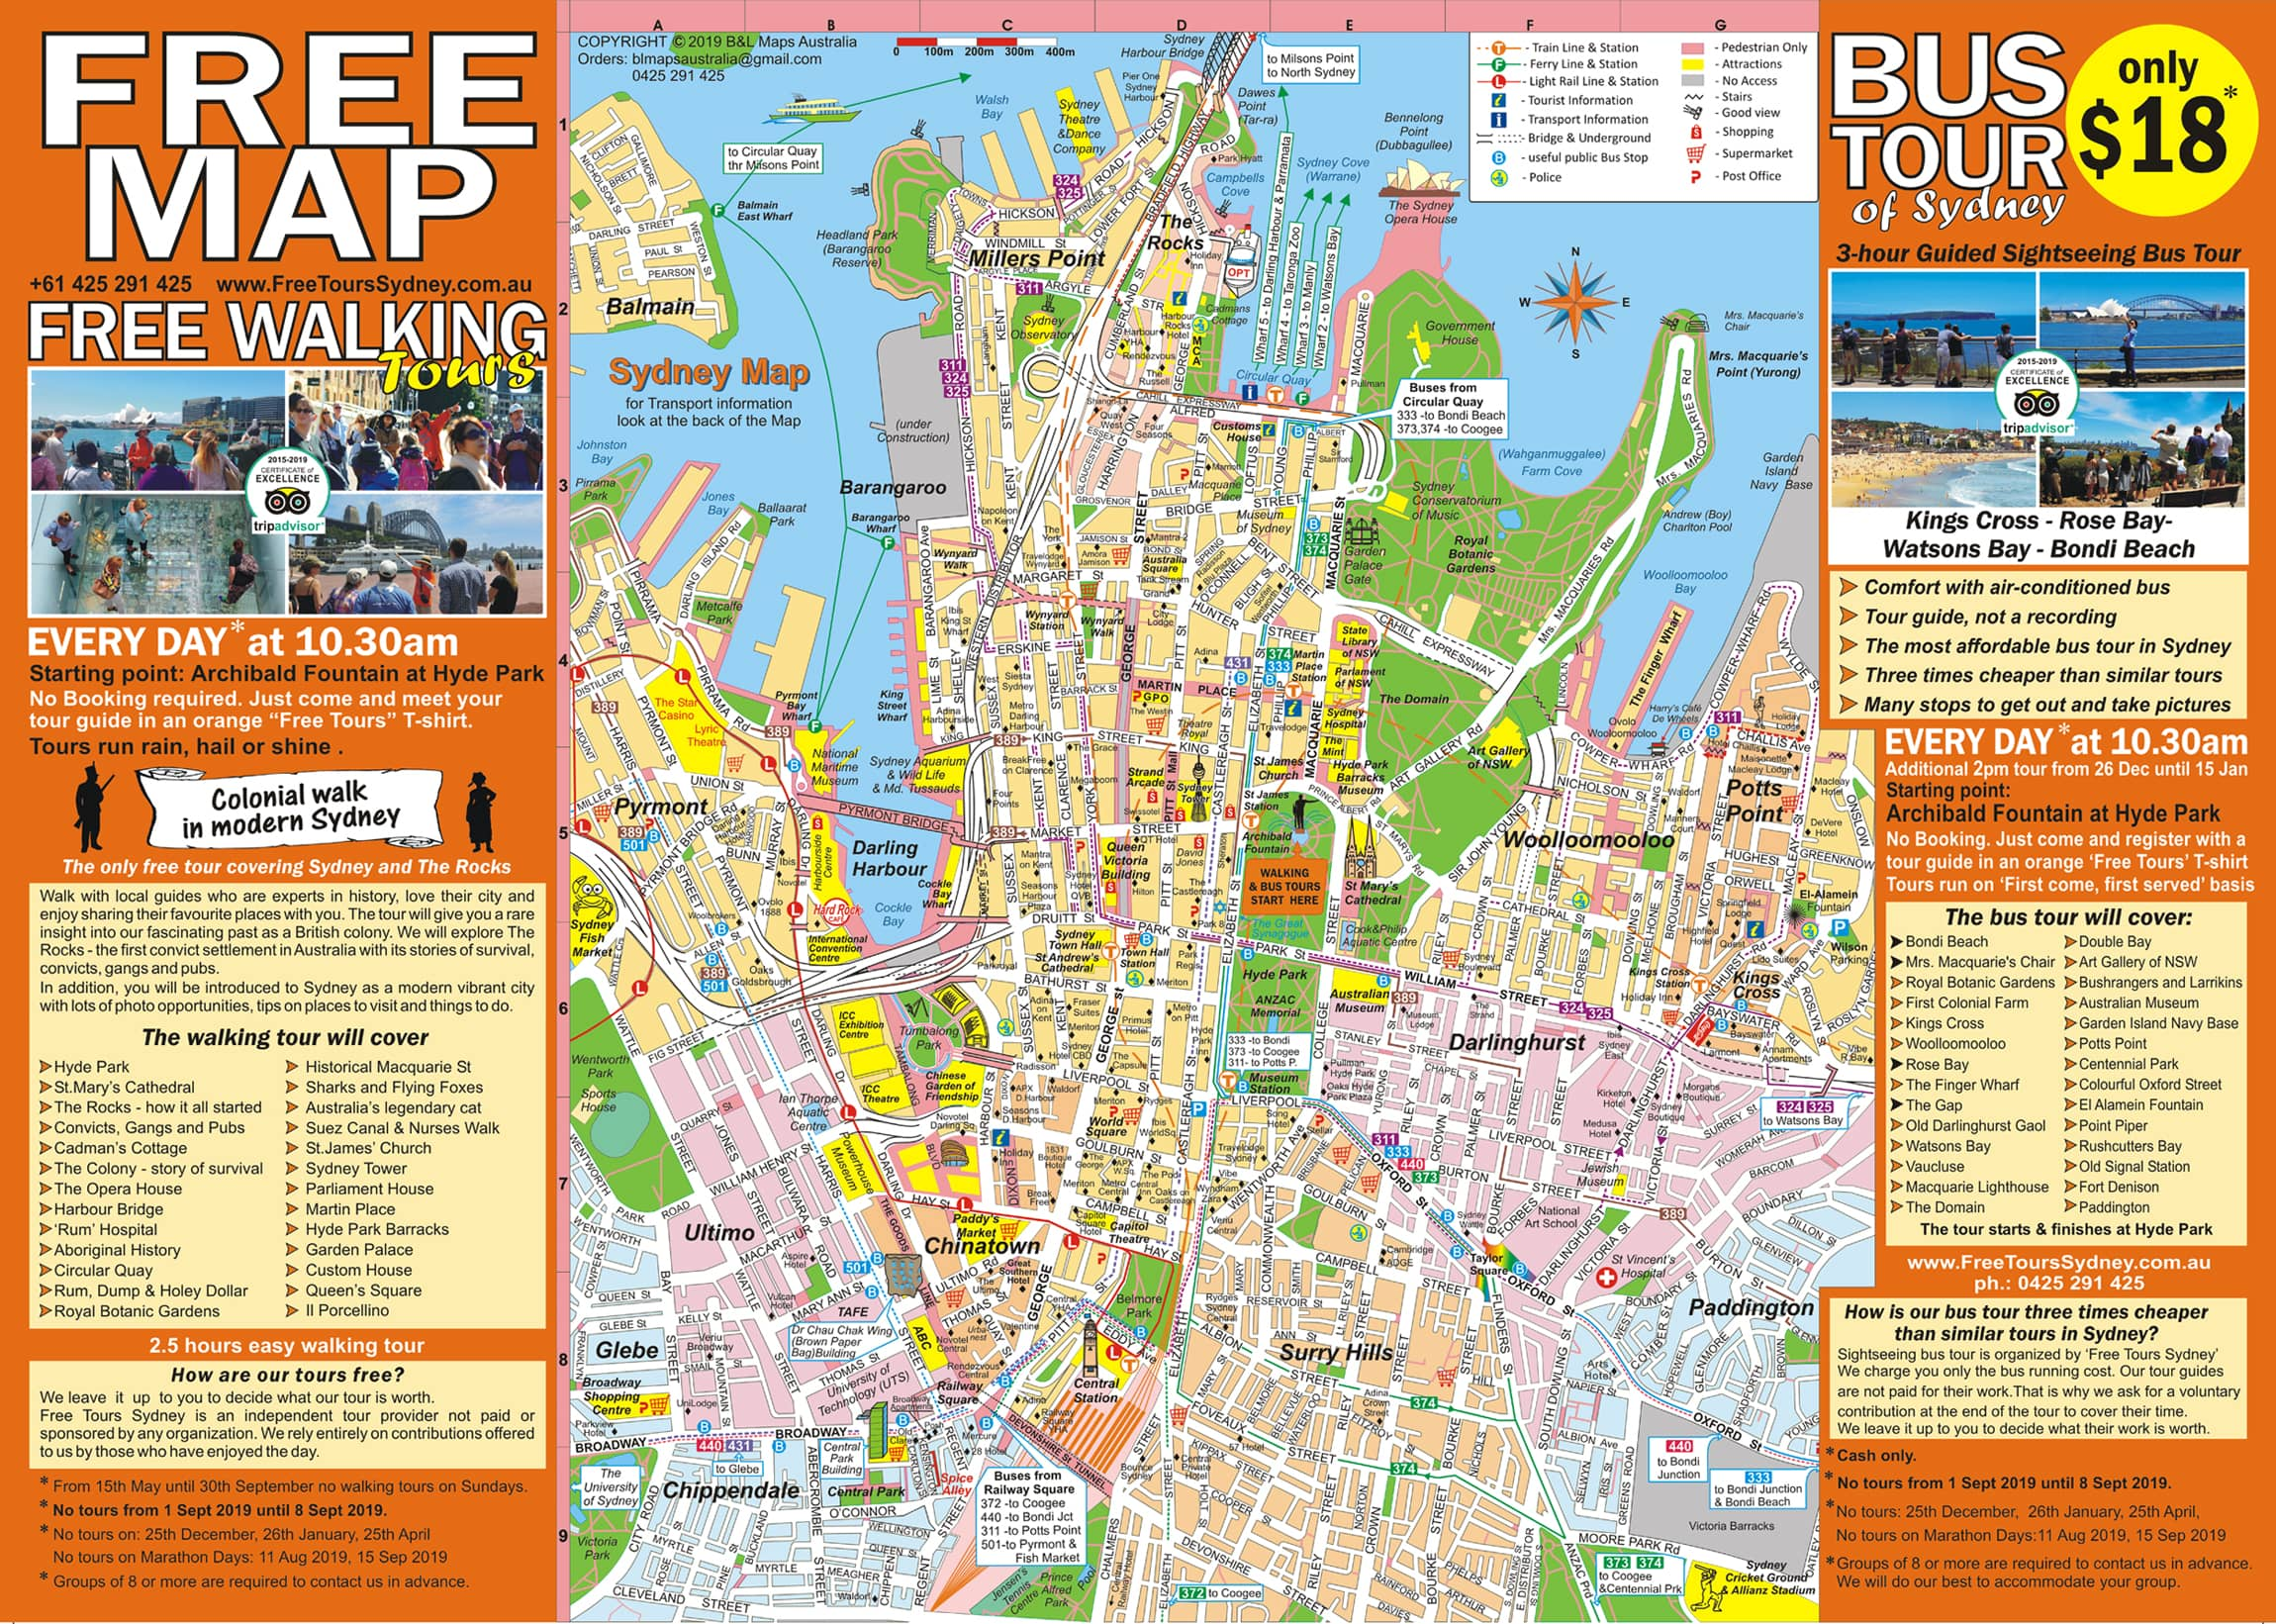 front page of free sydney map is a detailed map of Sydney CBD